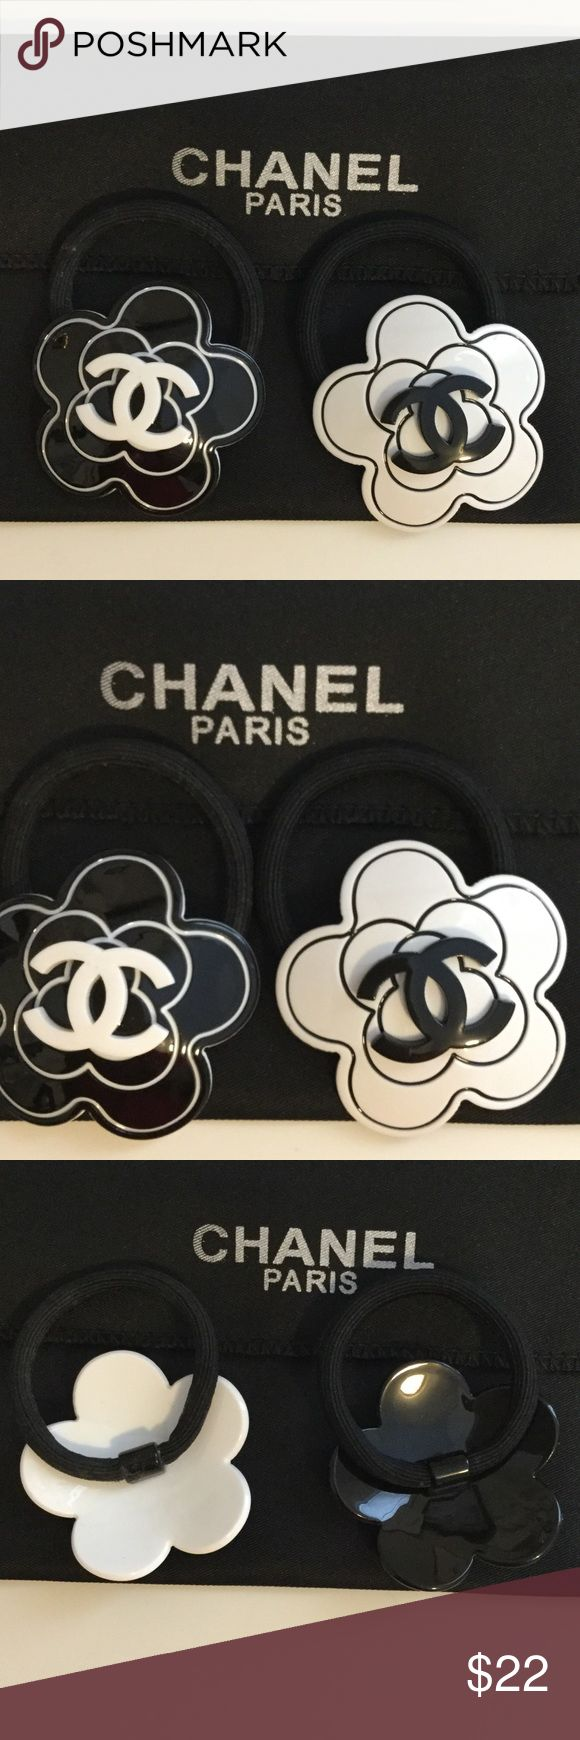 Chanel Hair Ties Price is for one! Black or White. 2 x 2 inches. CHANEL Makeup Brushes & Tools